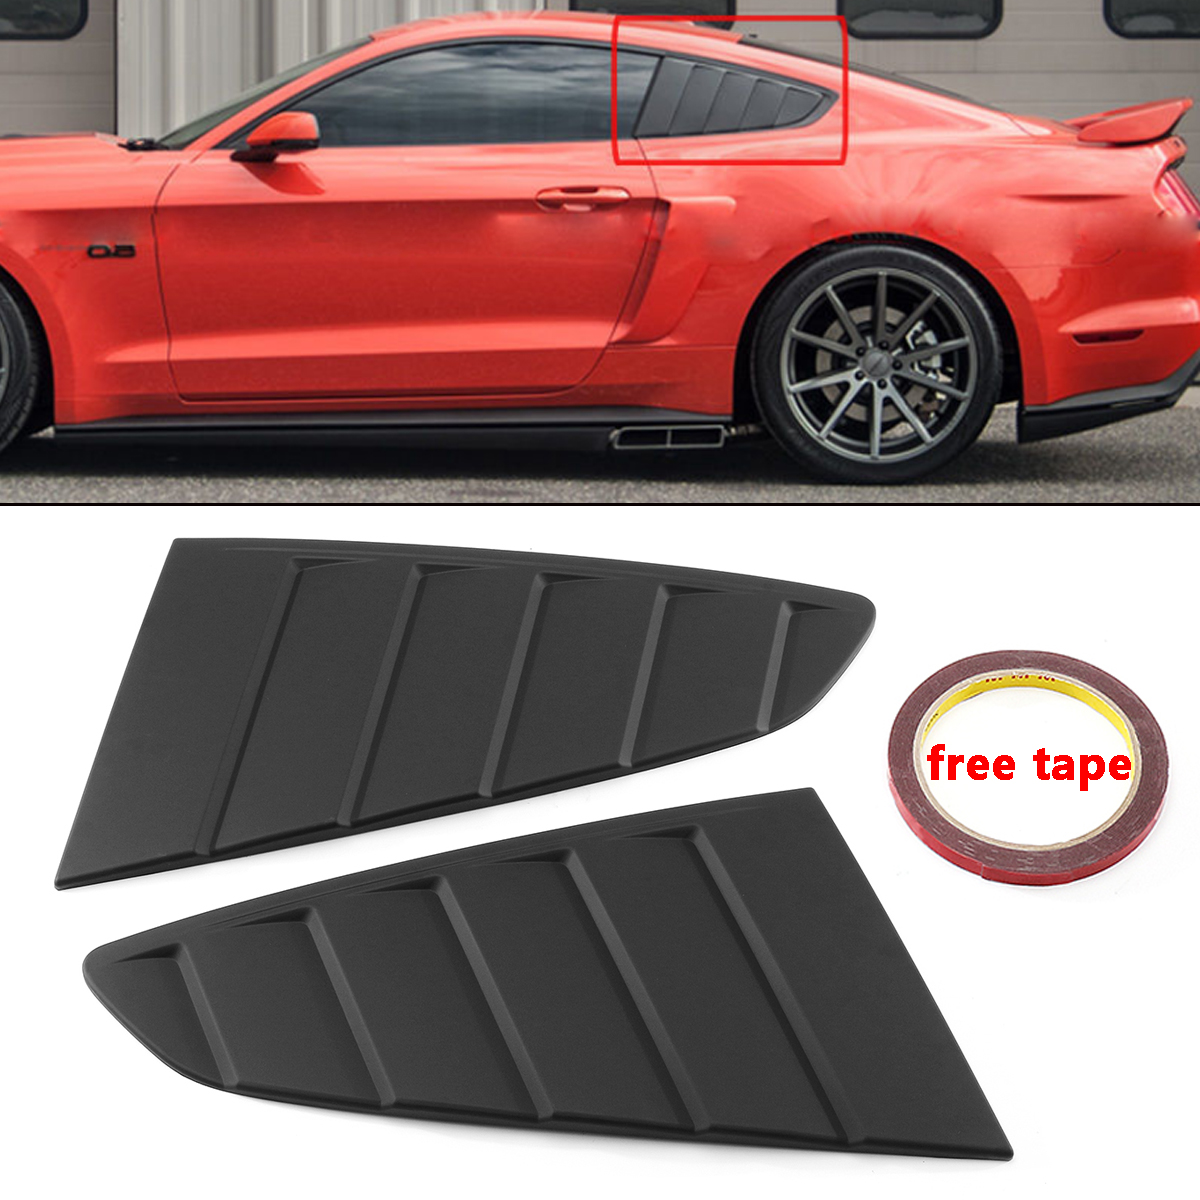 Waterproof Car Cover Fit Ford Mustang Coupe 05-14 Breathable 7 Layer Outdoor